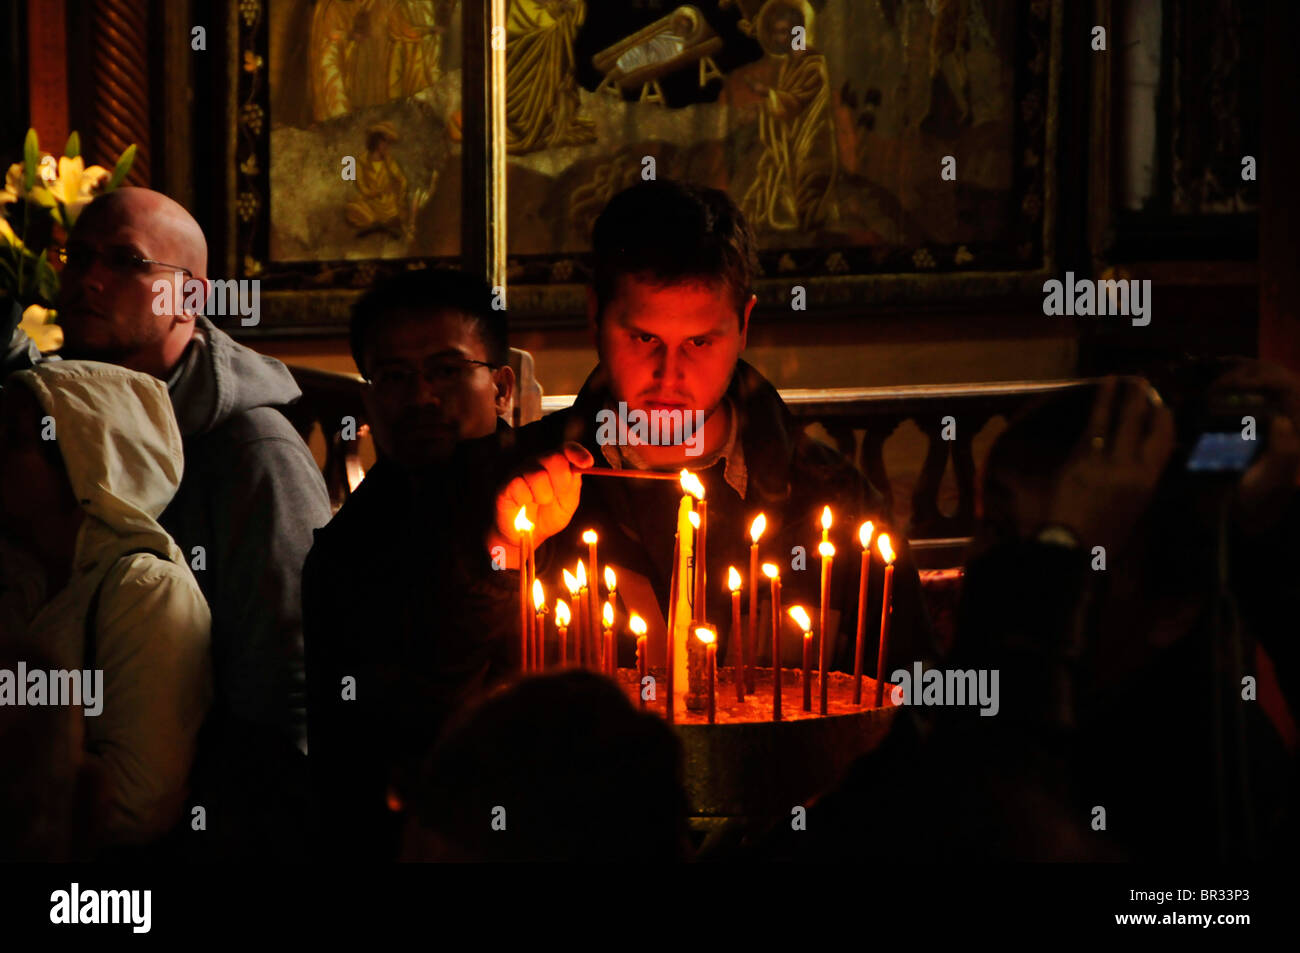 Christian pilgrim lights a candle in front of the birth grotto in the Chapel of the Nativity of Christ in Bethlehem, - Stock Image